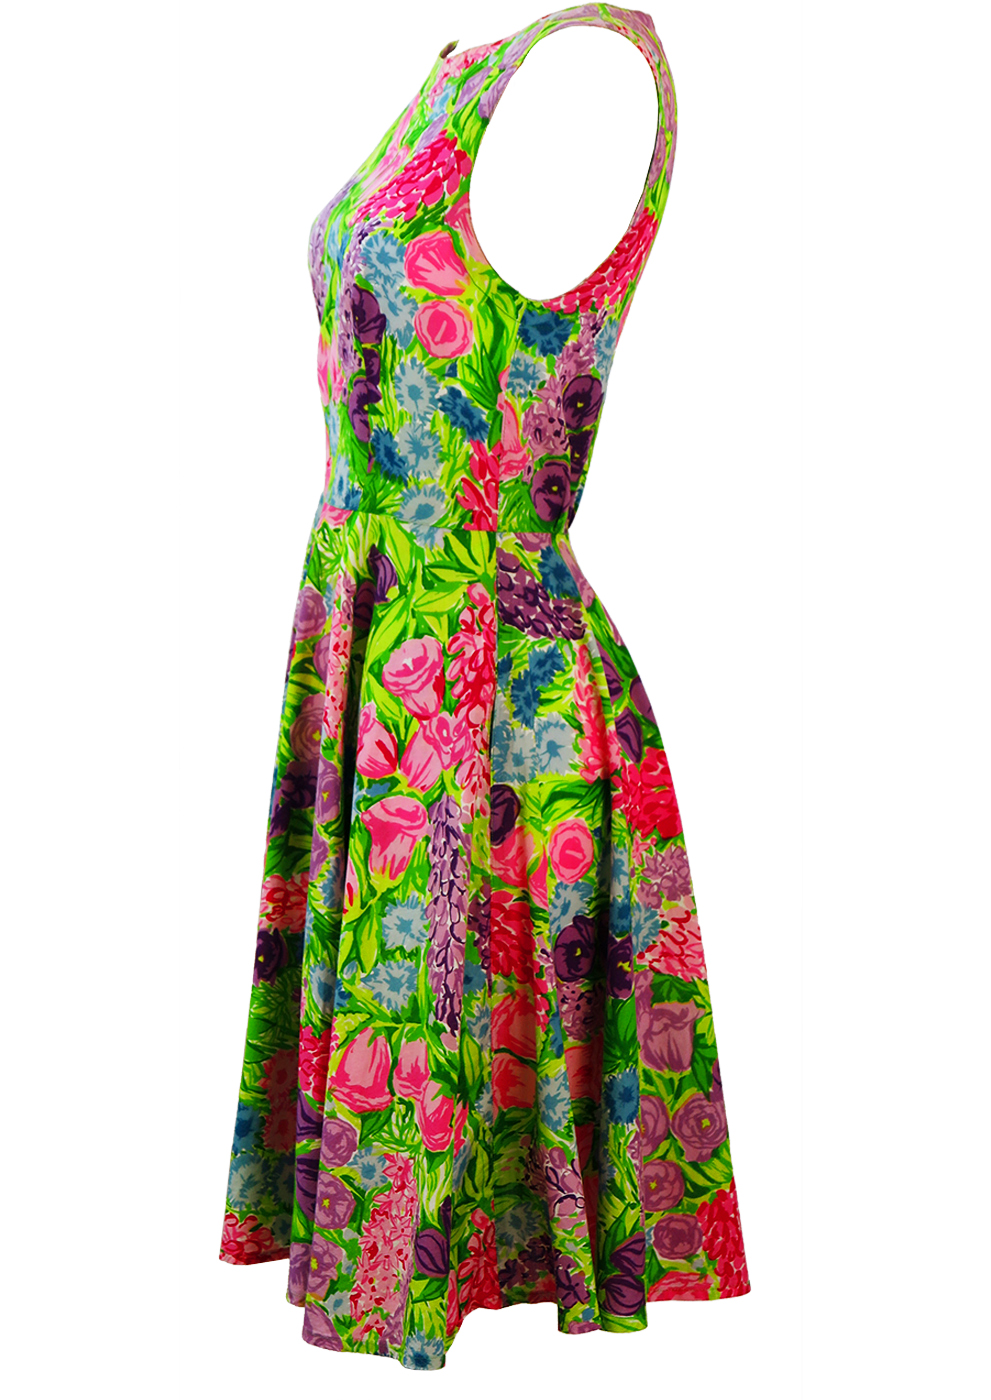 Bright Green Flare Dress With Pink Amp Purple Floral Print